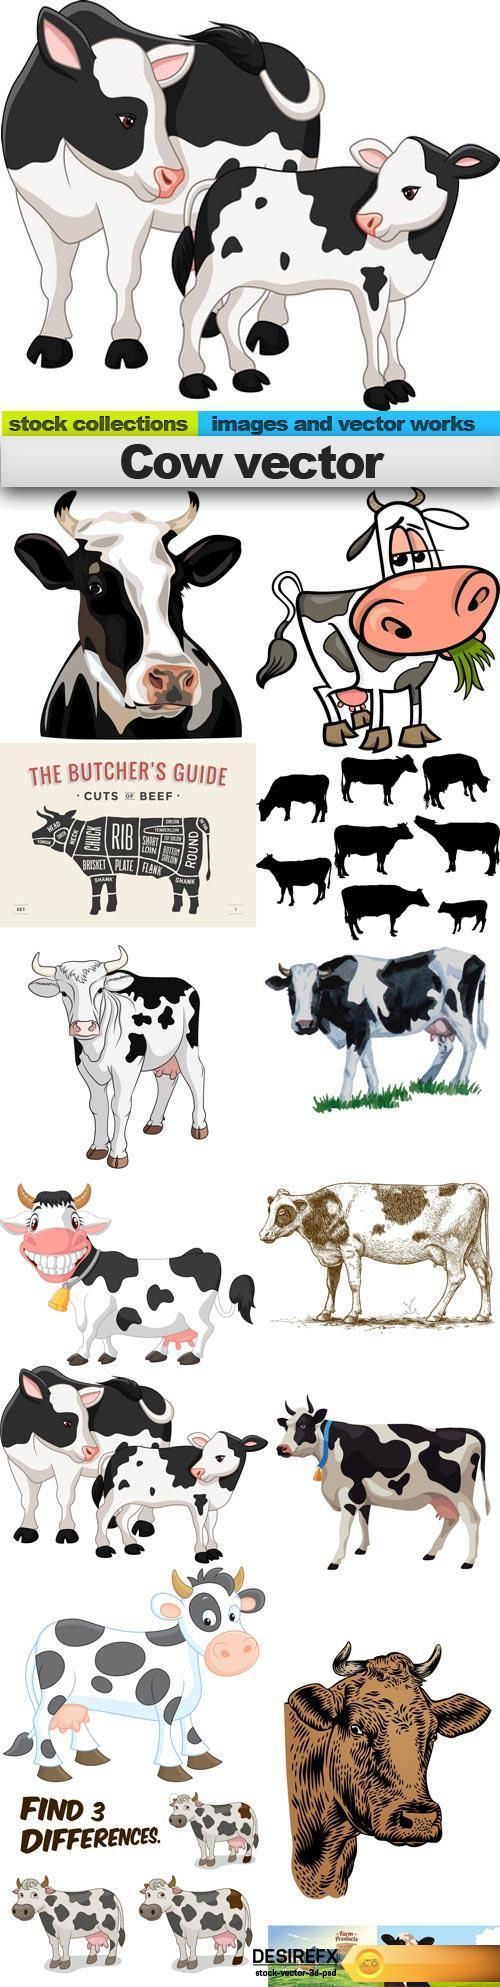 the 25 best cow vector ideas on pinterest cartoon cow cute